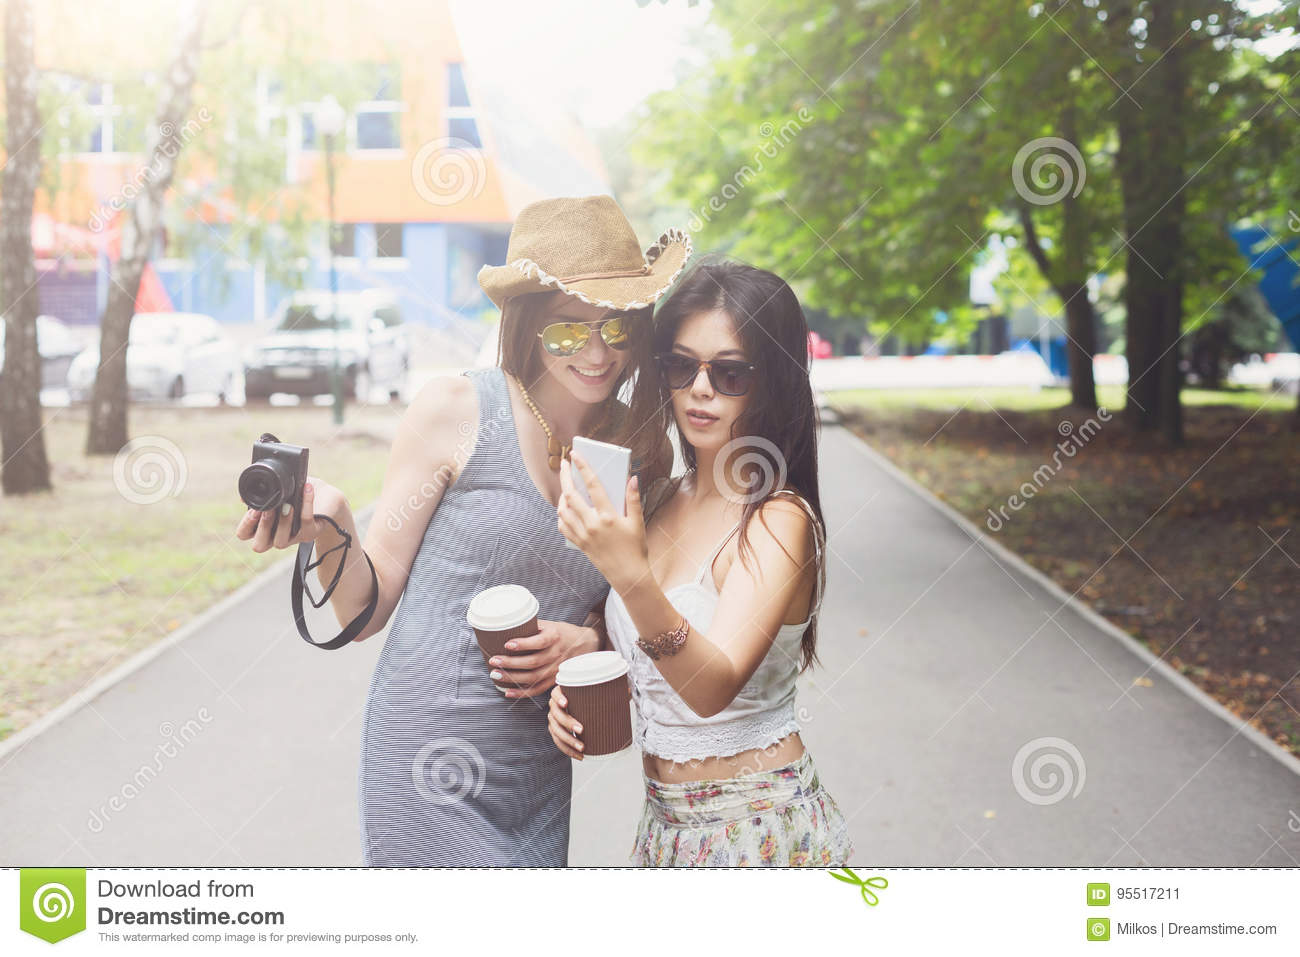 0861327e47 Two girls friends take selfie with smartphone. Young female tourists in  boho chic fashion clothes